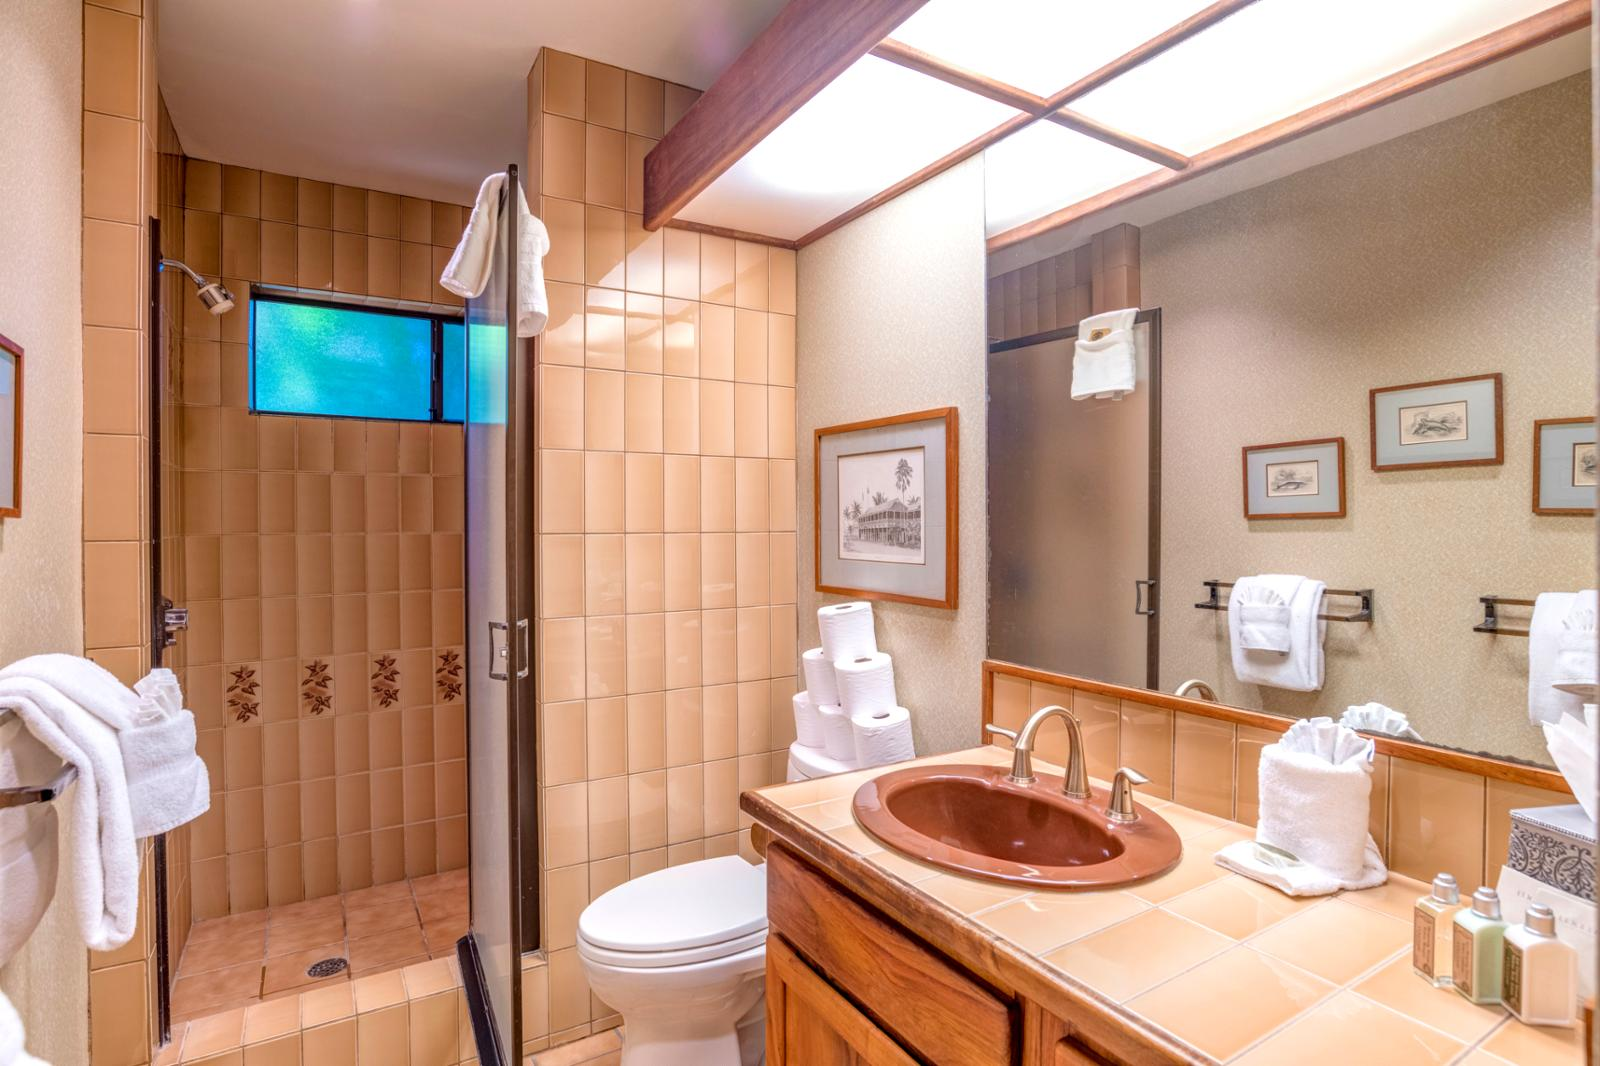 Guest bathroom located on floor 1